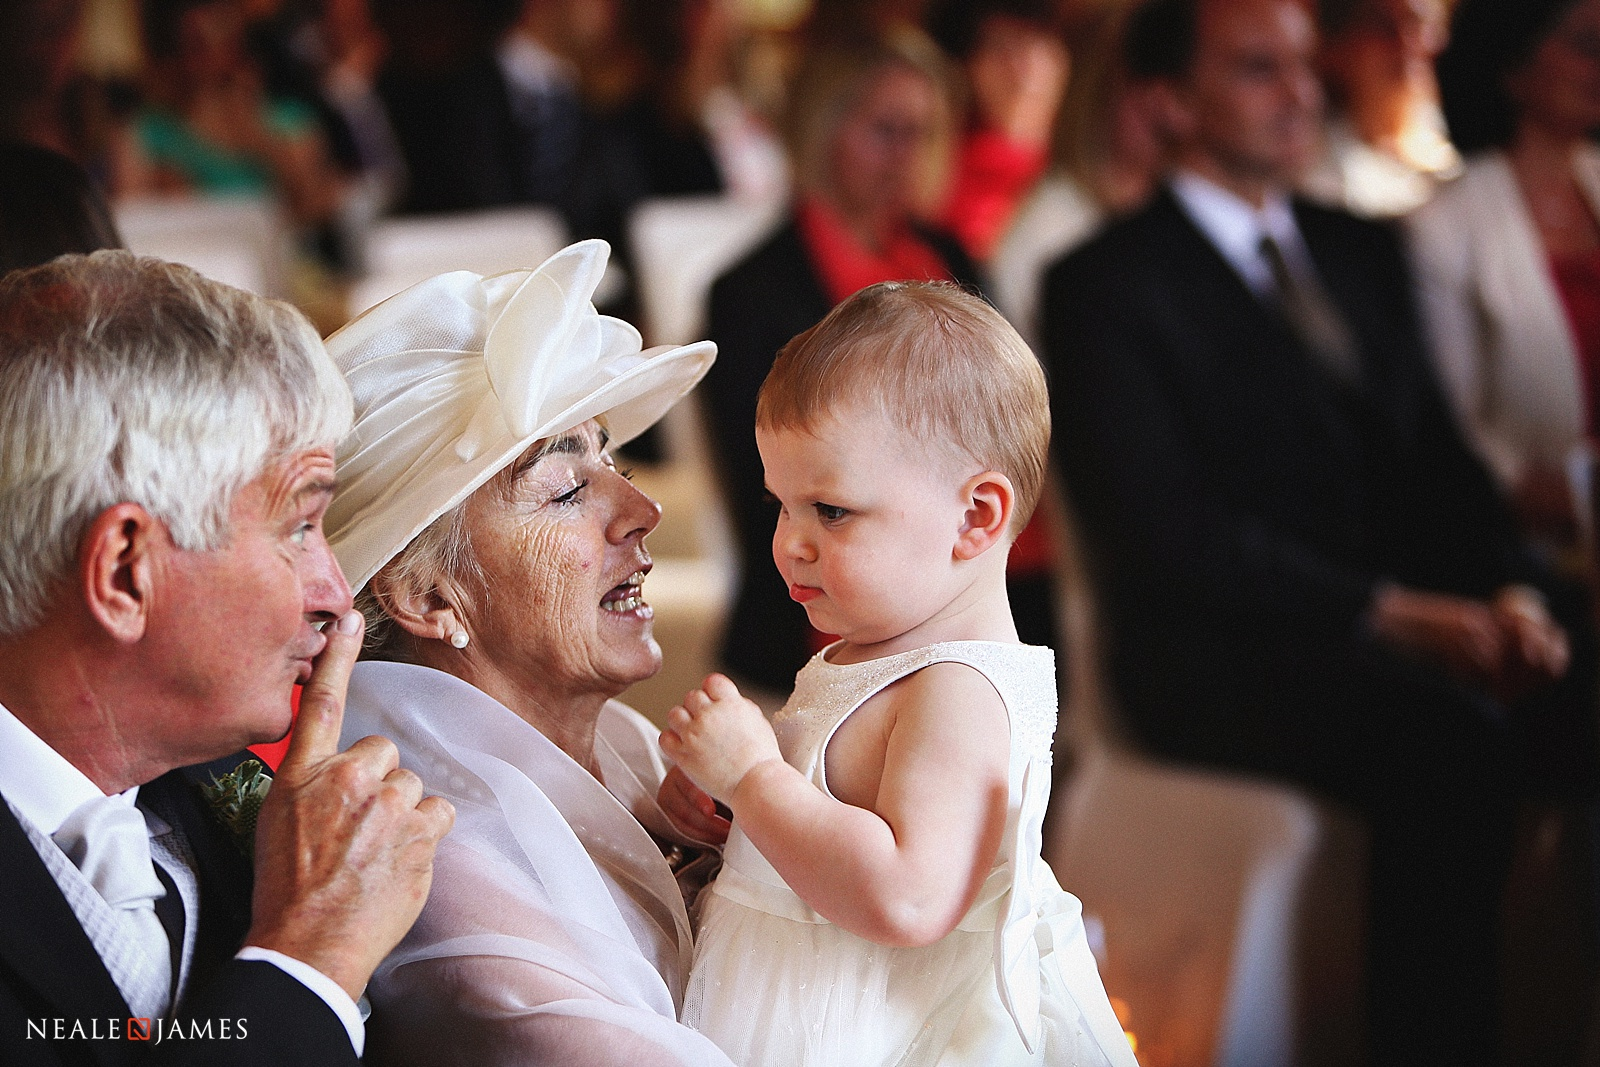 A Grandfather trying to calm a child during a wedding